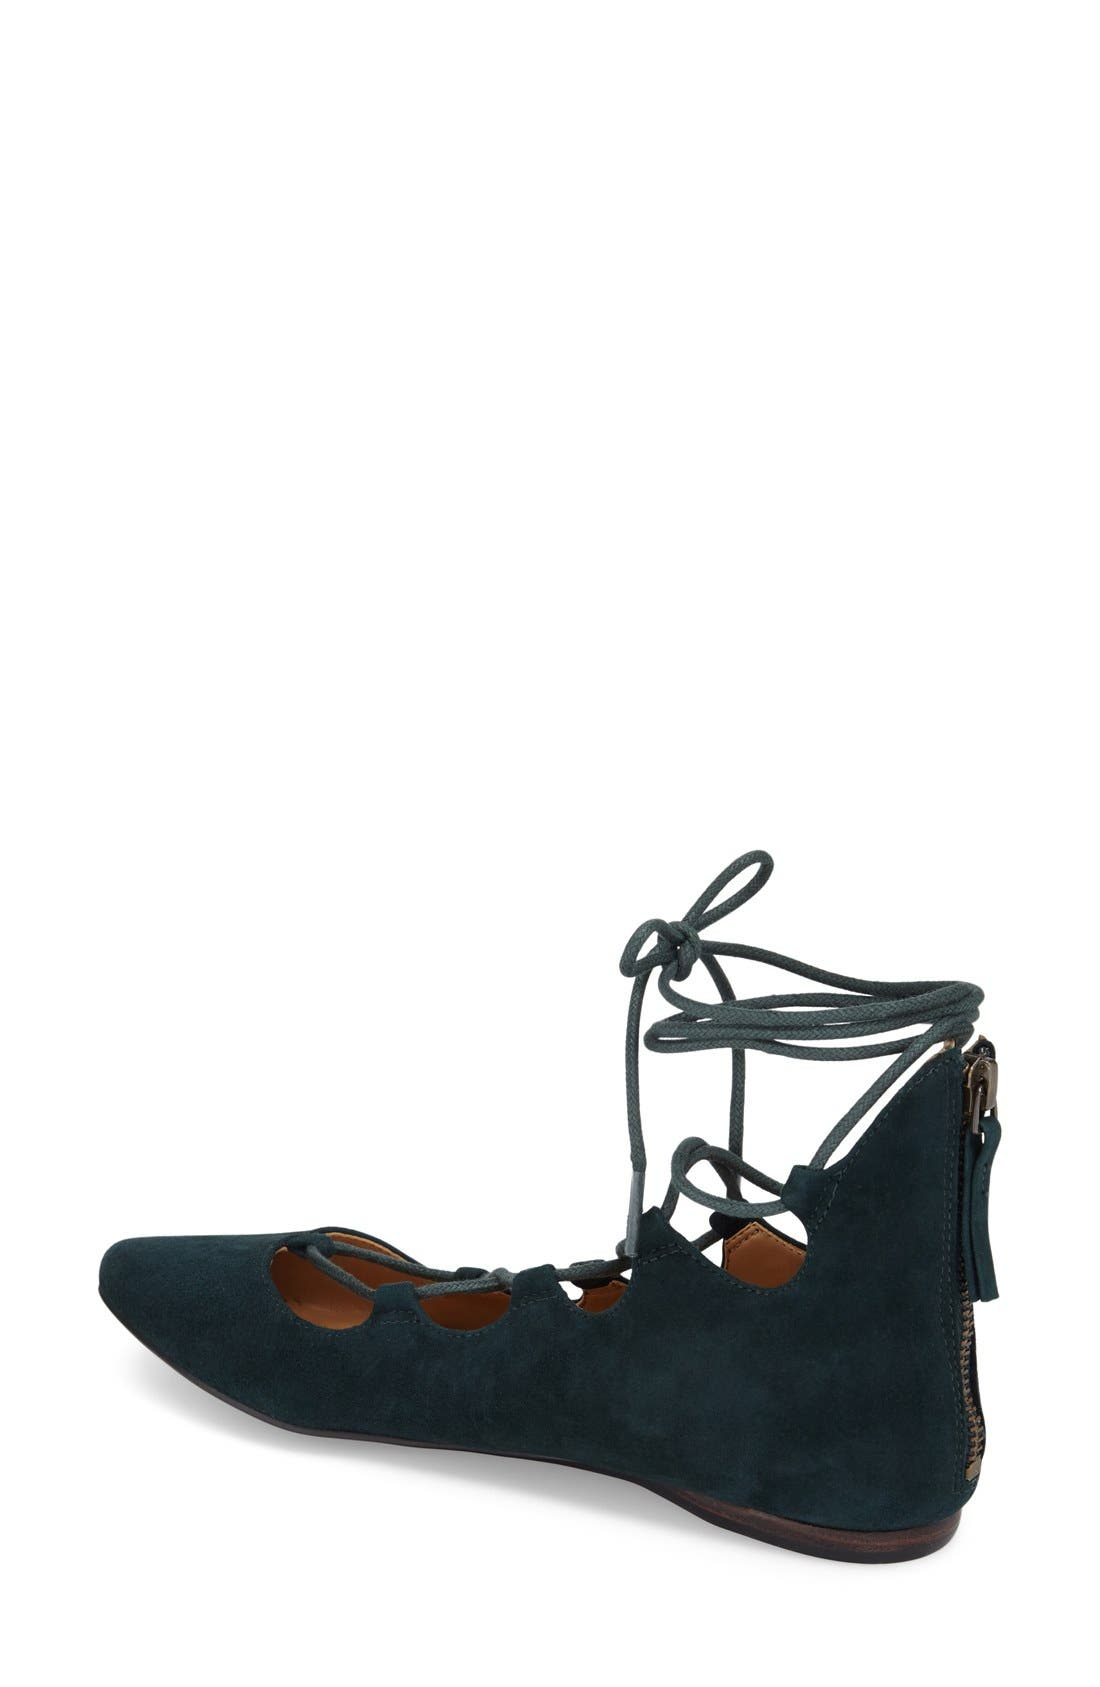 'Sign Me Up' Ghillie Flat,                             Alternate thumbnail 2, color,                             Dark Green Suede